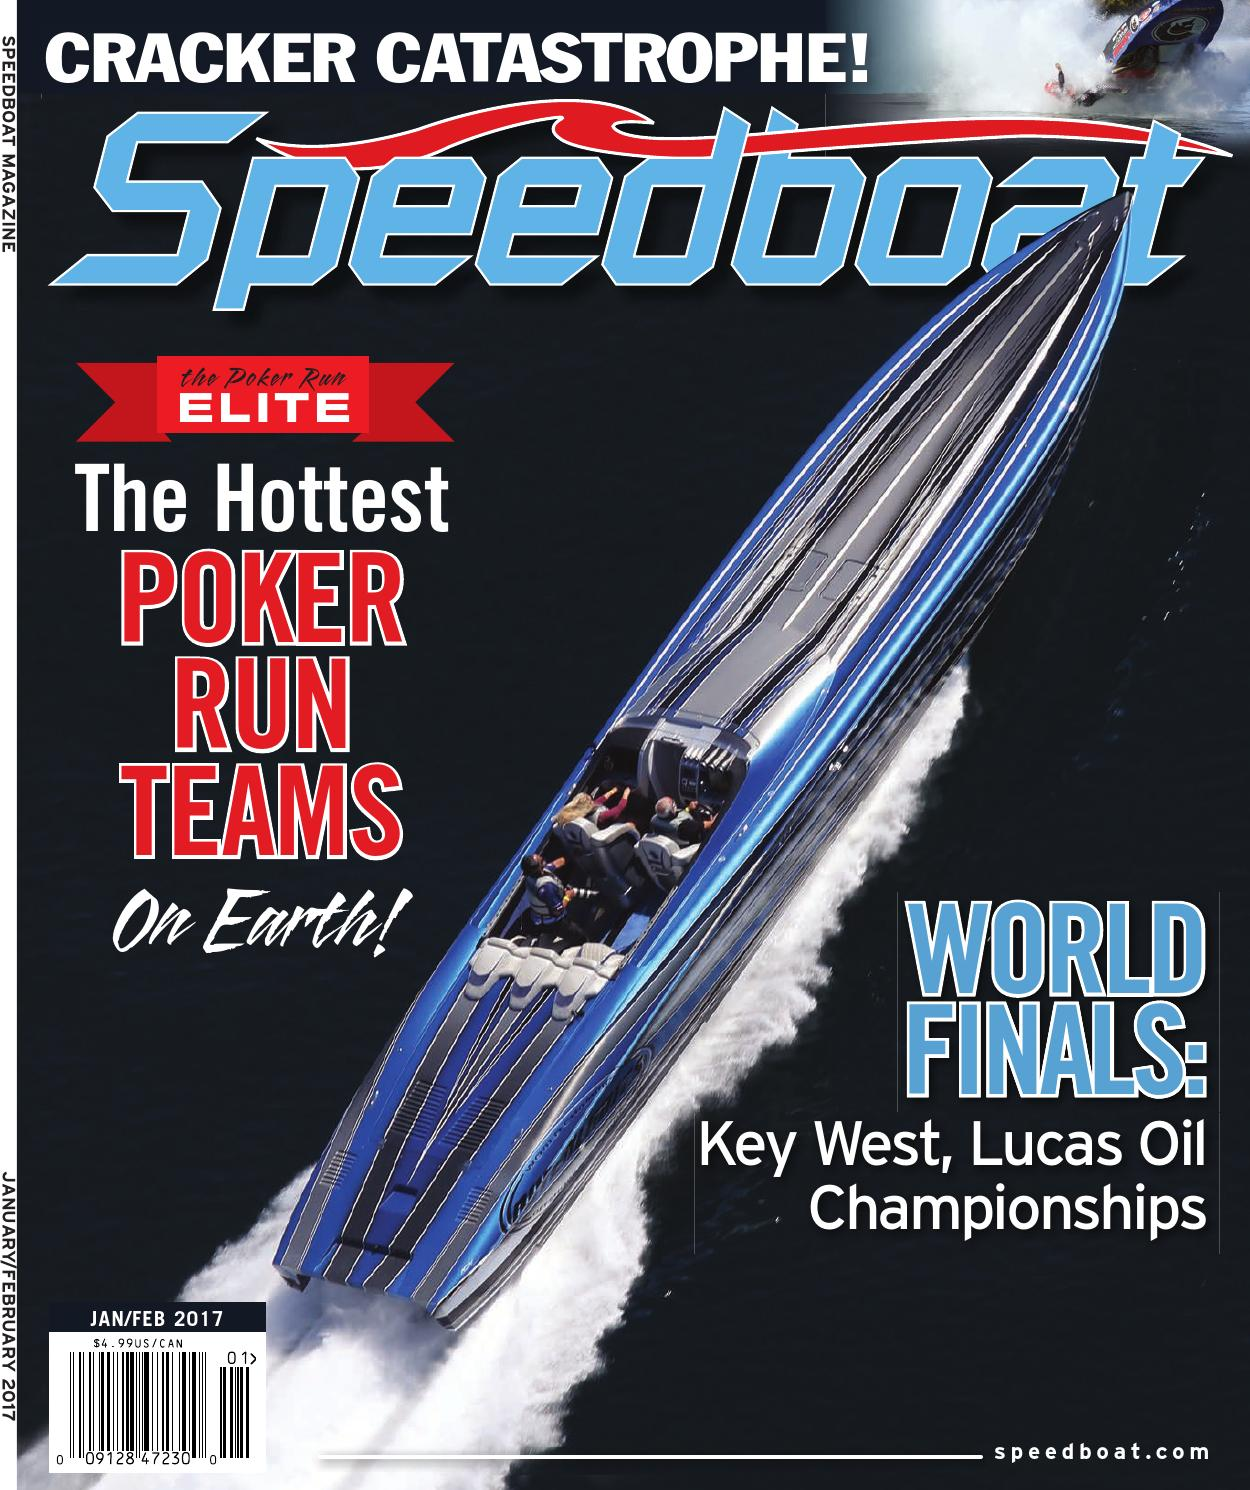 Speedboat January 2017 By Brett Bayne